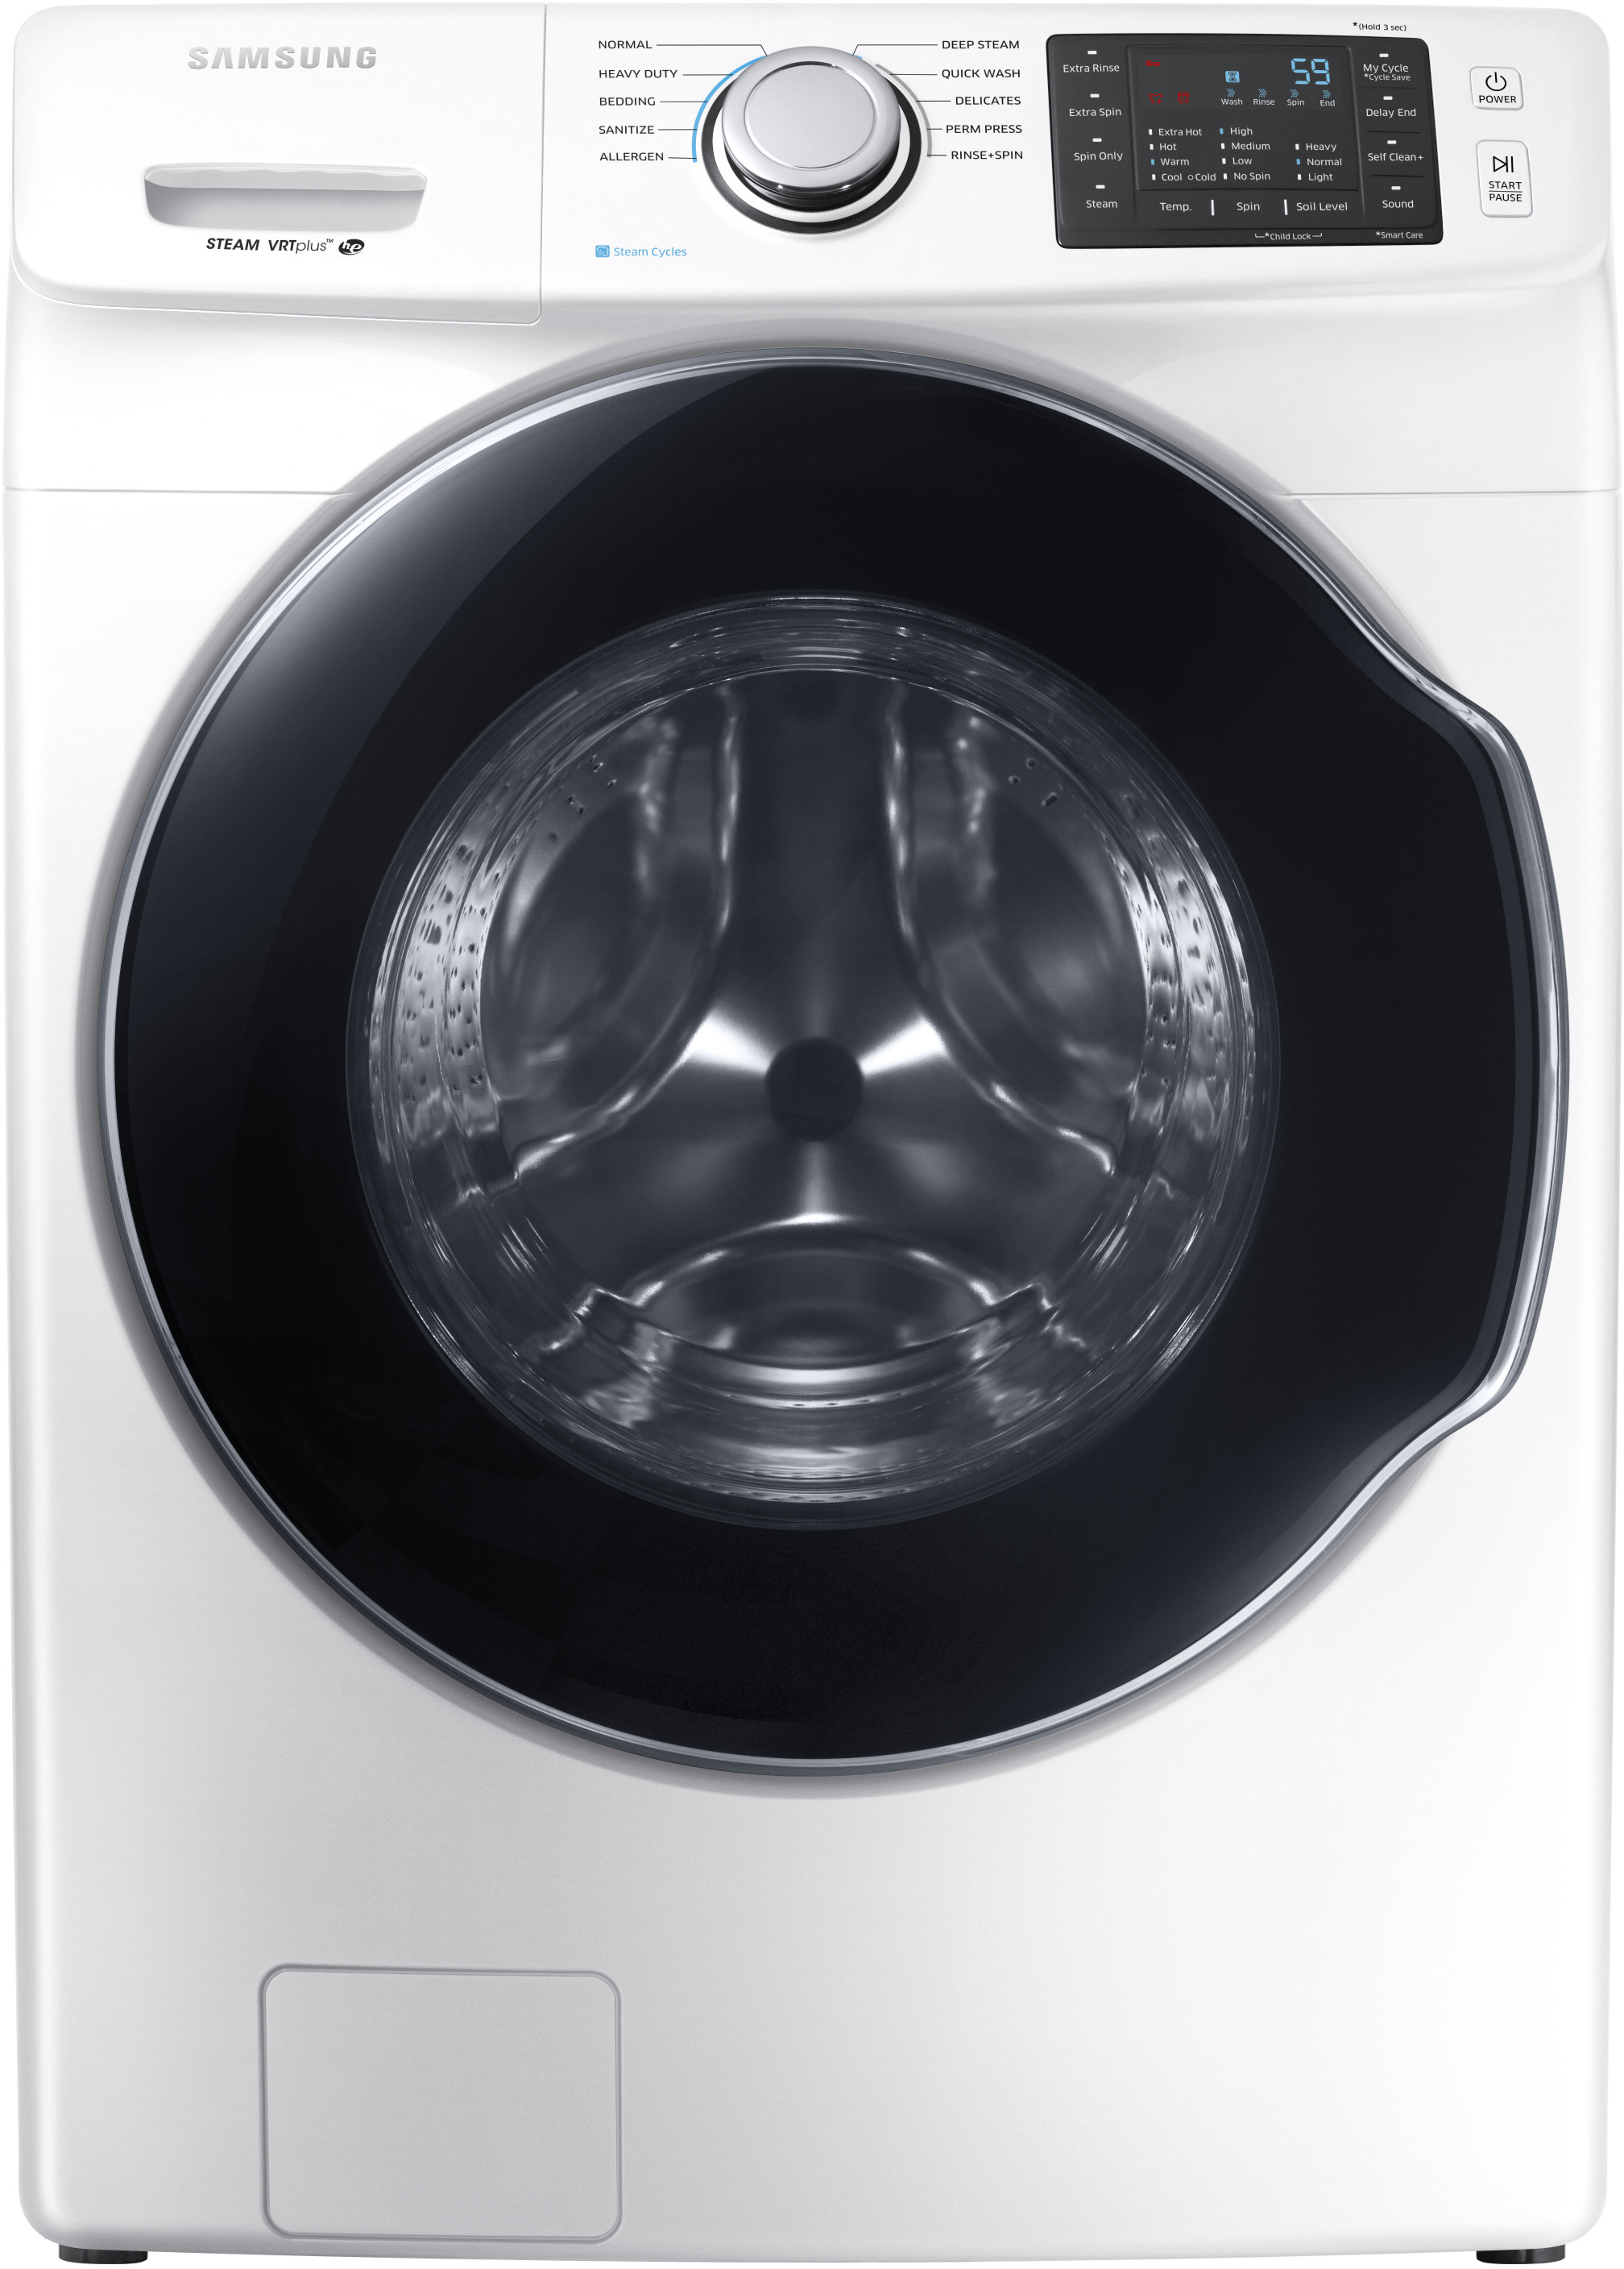 Samsung Wf45m5500aw 27 Inch Front Load Washer With Steam Self